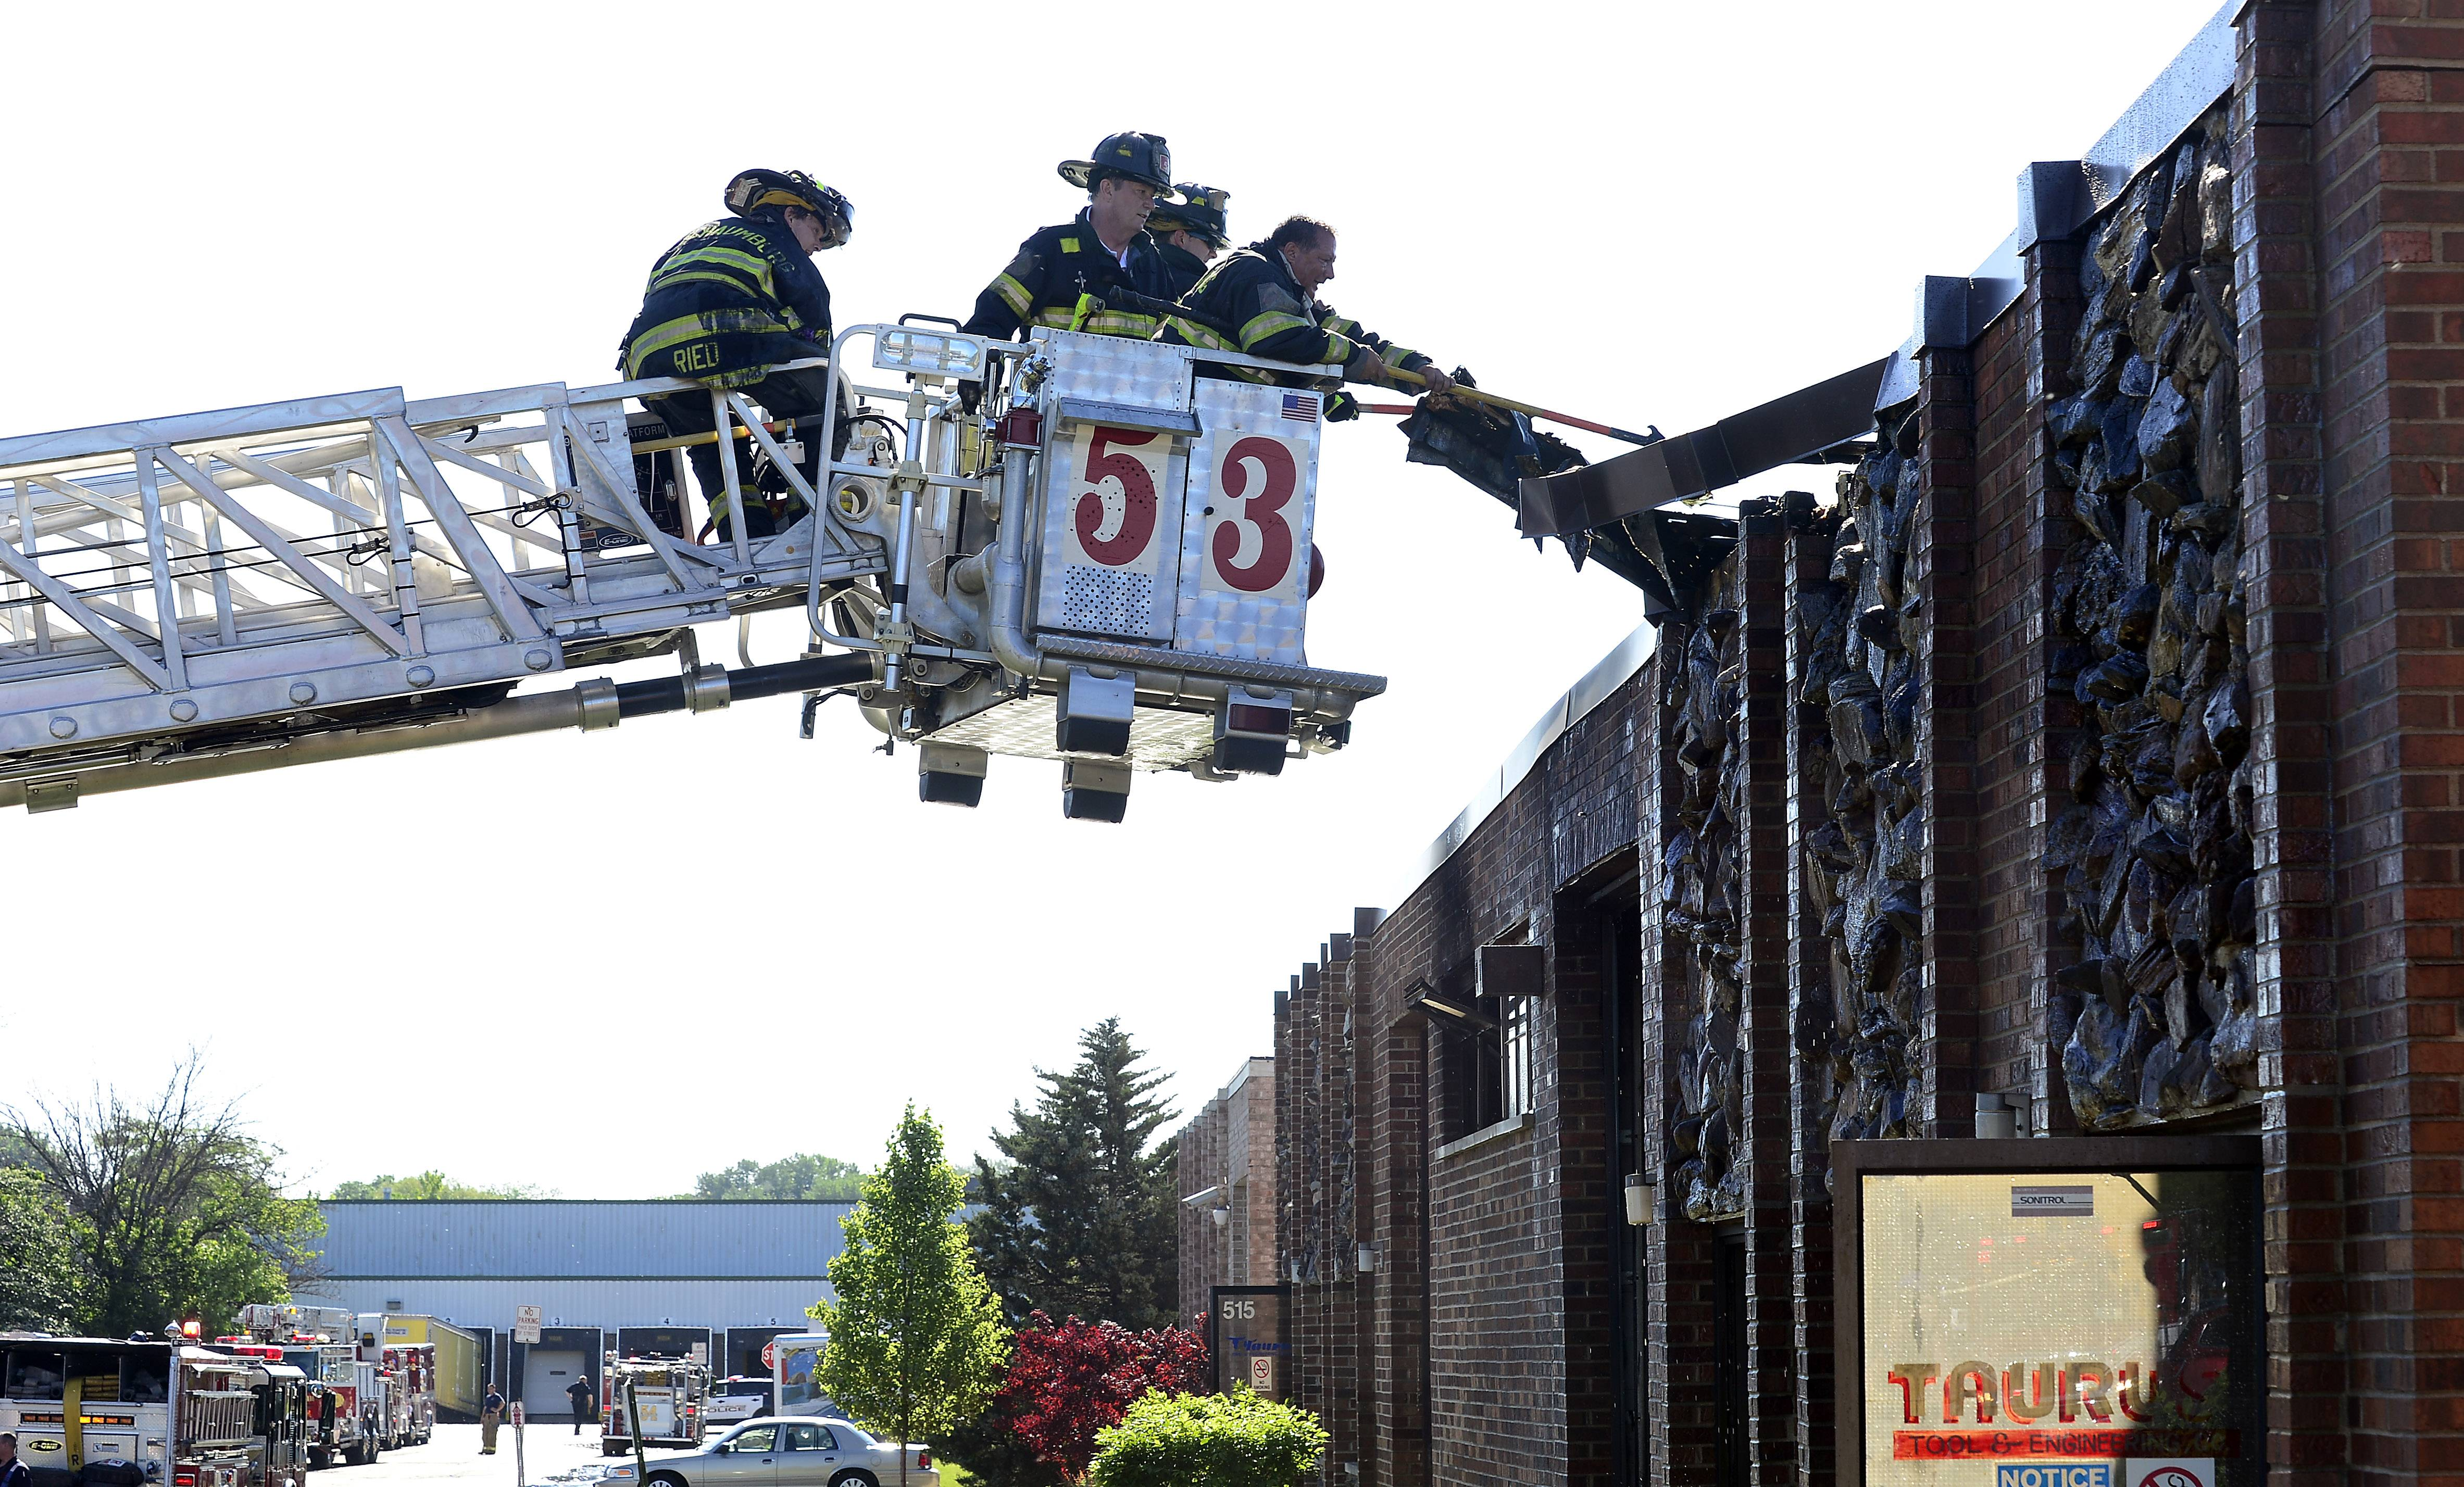 Schaumburg firefighters use the aerial ladder Tuesday morning to rip away at the facade of the Taurus Tool and Engineering Inc. on the 500 block of Estes Avenue in Schaumburg after fire broke out.